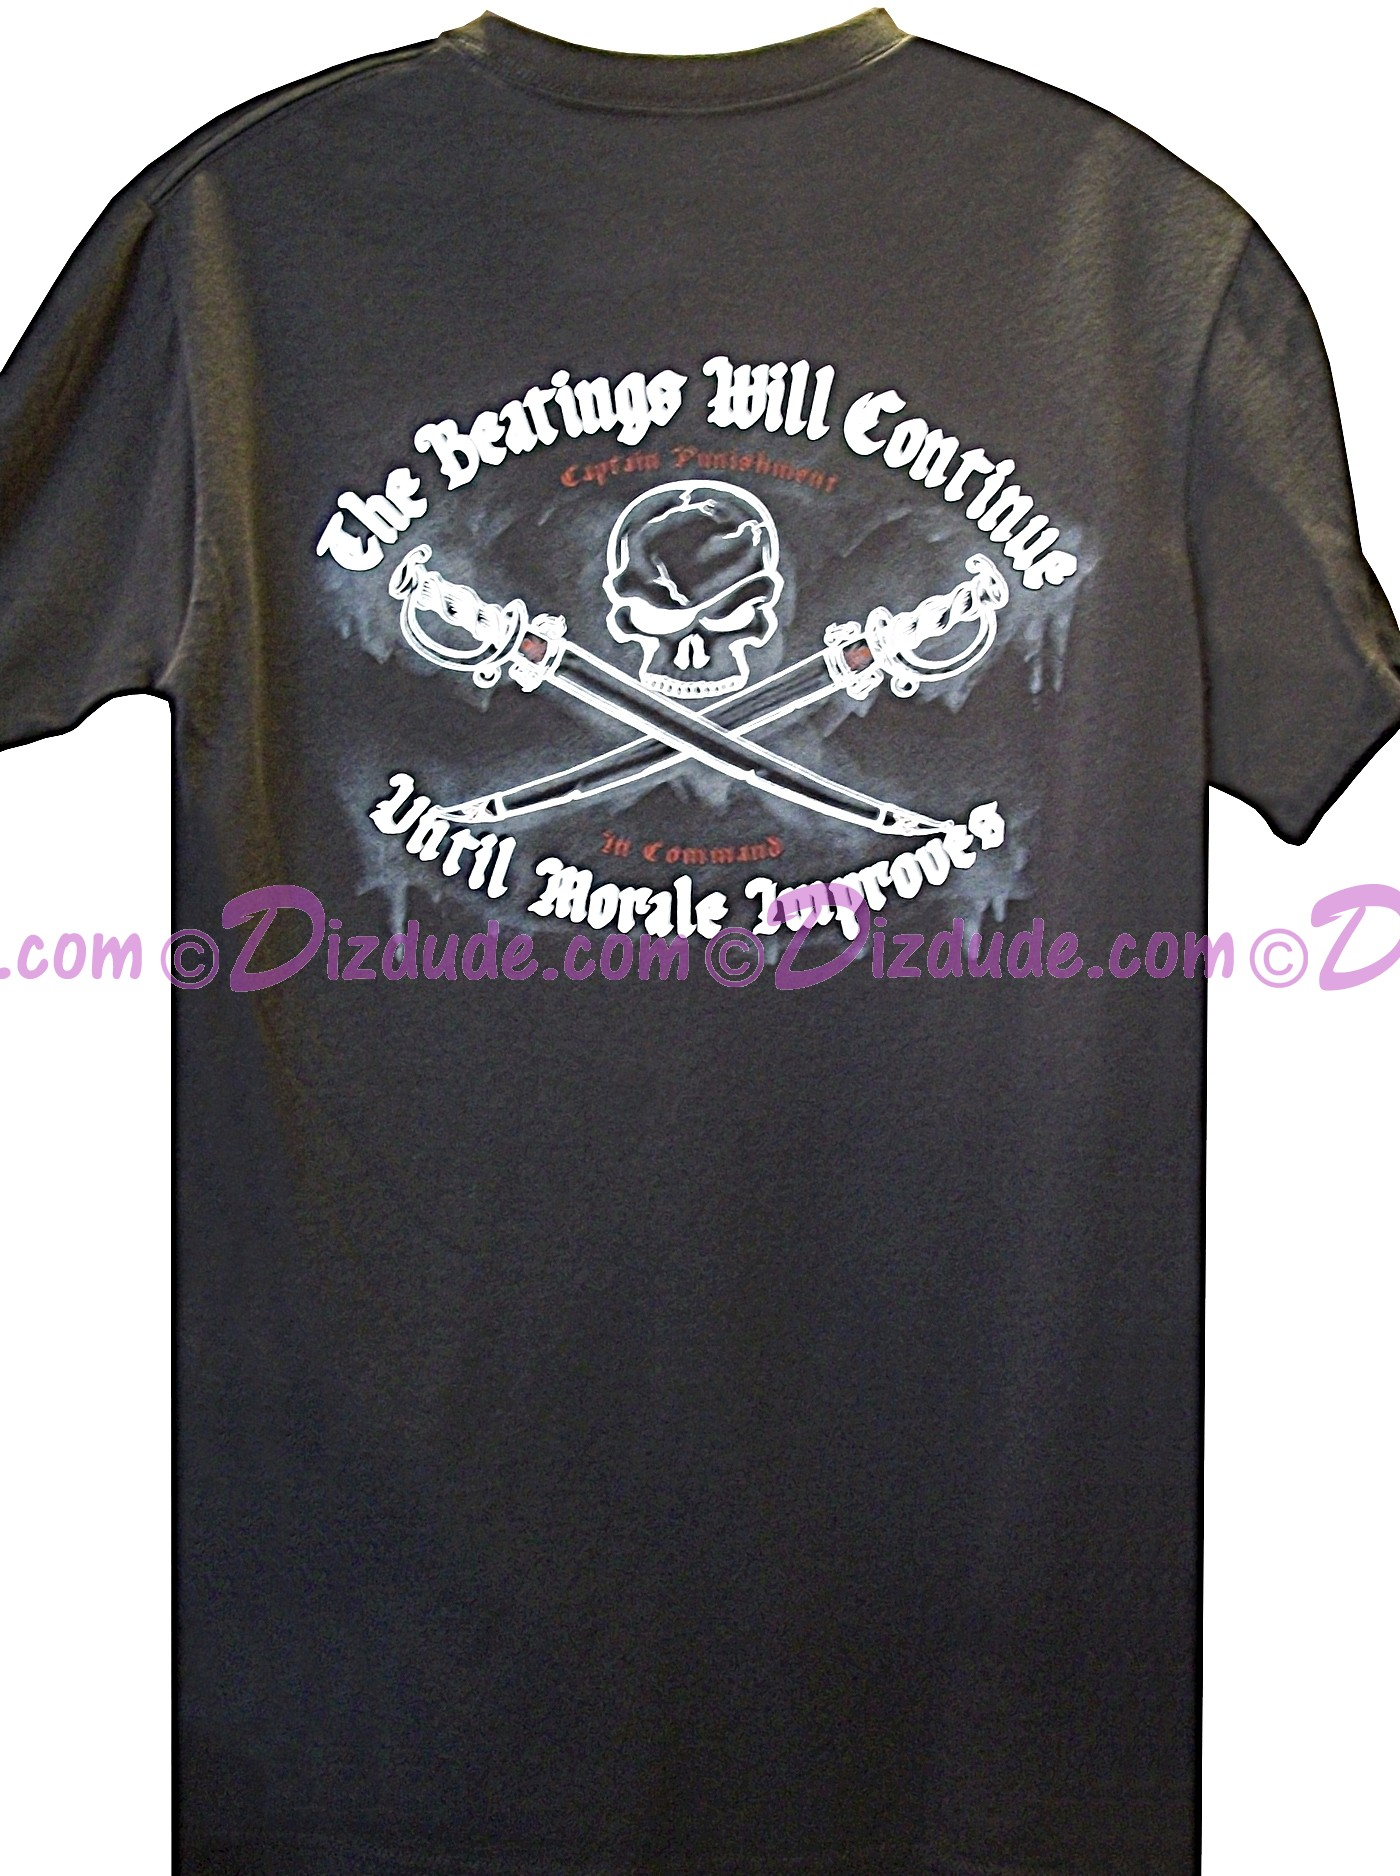 "Vintage Pirates of the Caribbean ""The Beatings Will Continue Until Moral Improves"" T-shirt (Tee, Tshirt or T shirt)"